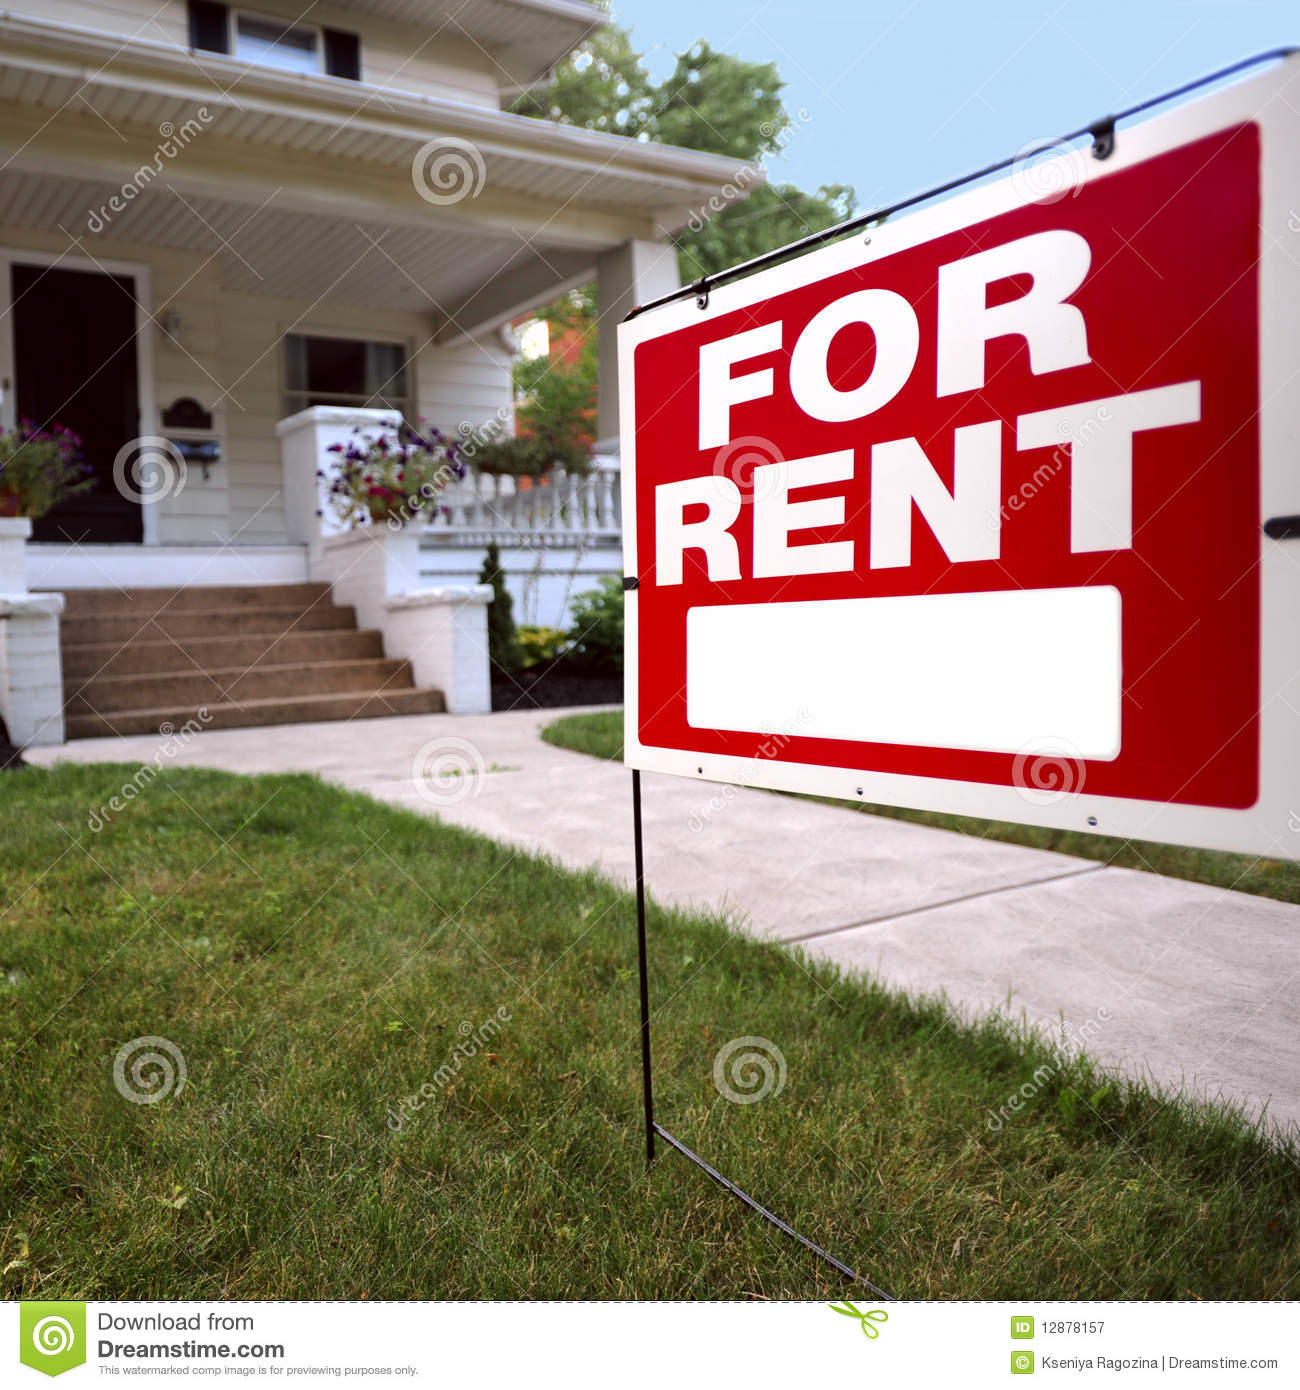 Rent Home: Home For Rent Sign Royalty Free Stock Photography